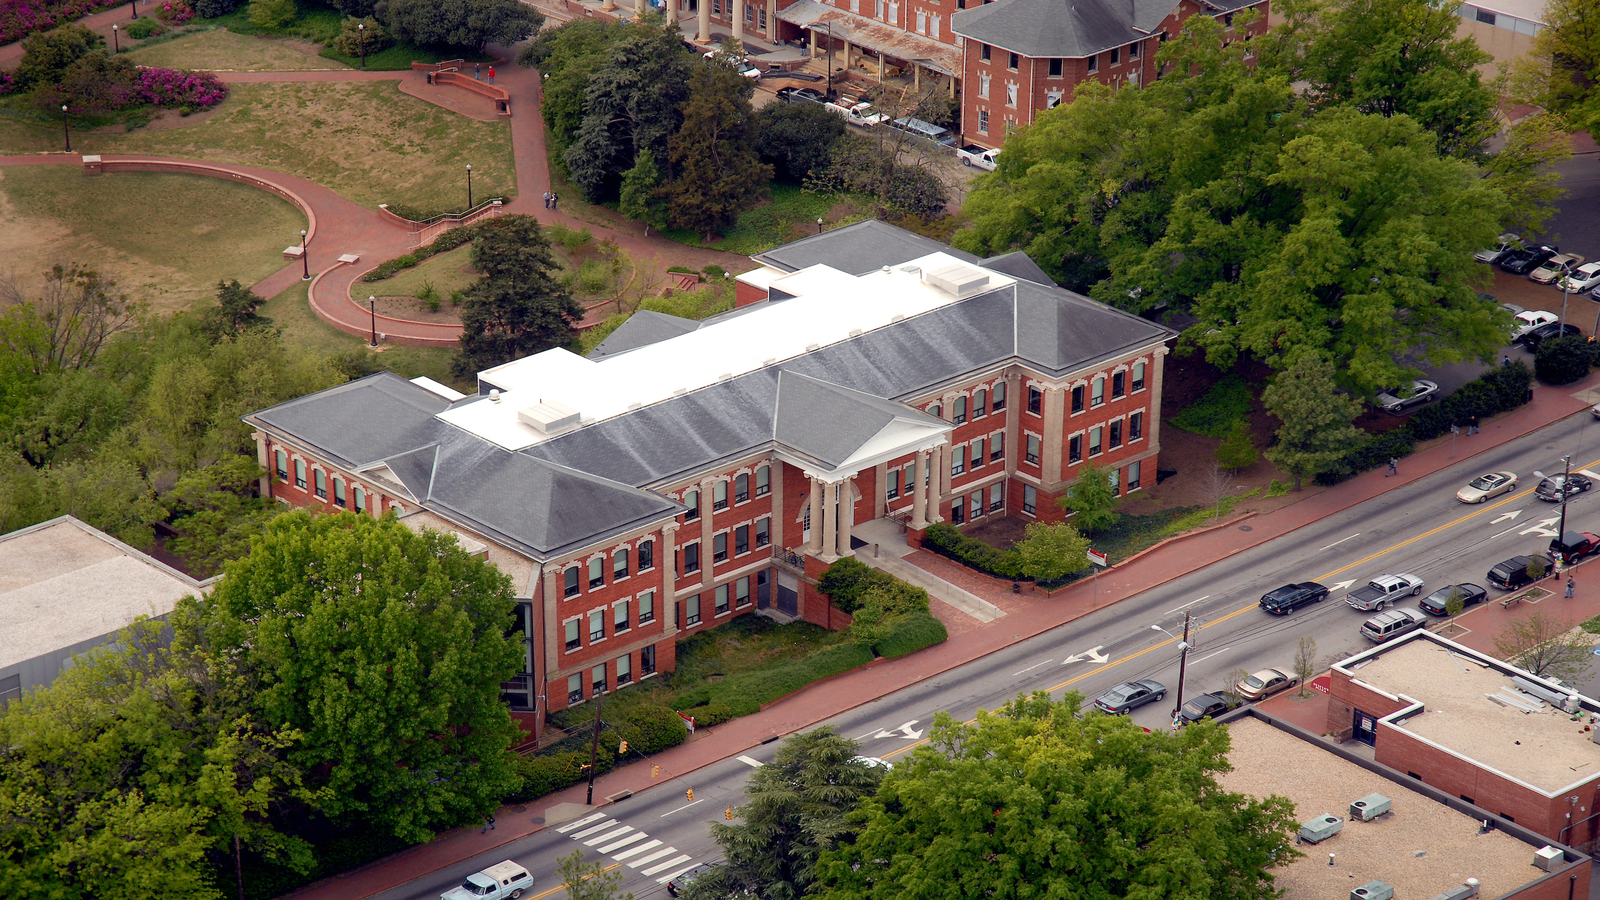 Aerial view of the Winston-Caldwell-Tompkins building